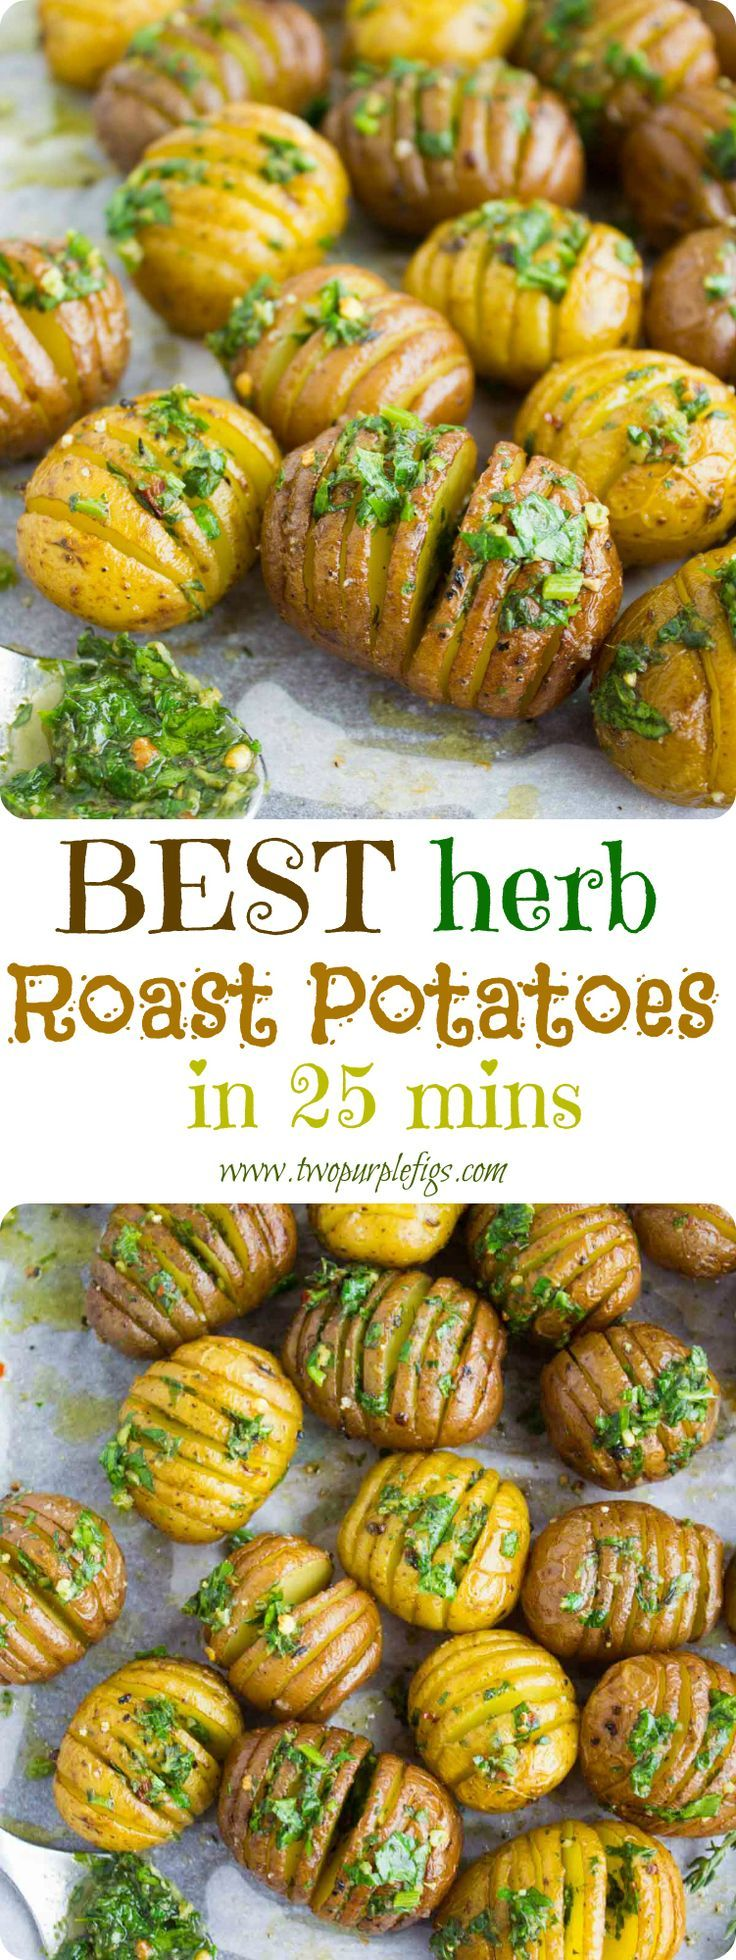 Absolutely the best herb roast potatoes recipe! Hasselback and roasted till crispy on the outside and tender on the inside then brushed with herb butter.